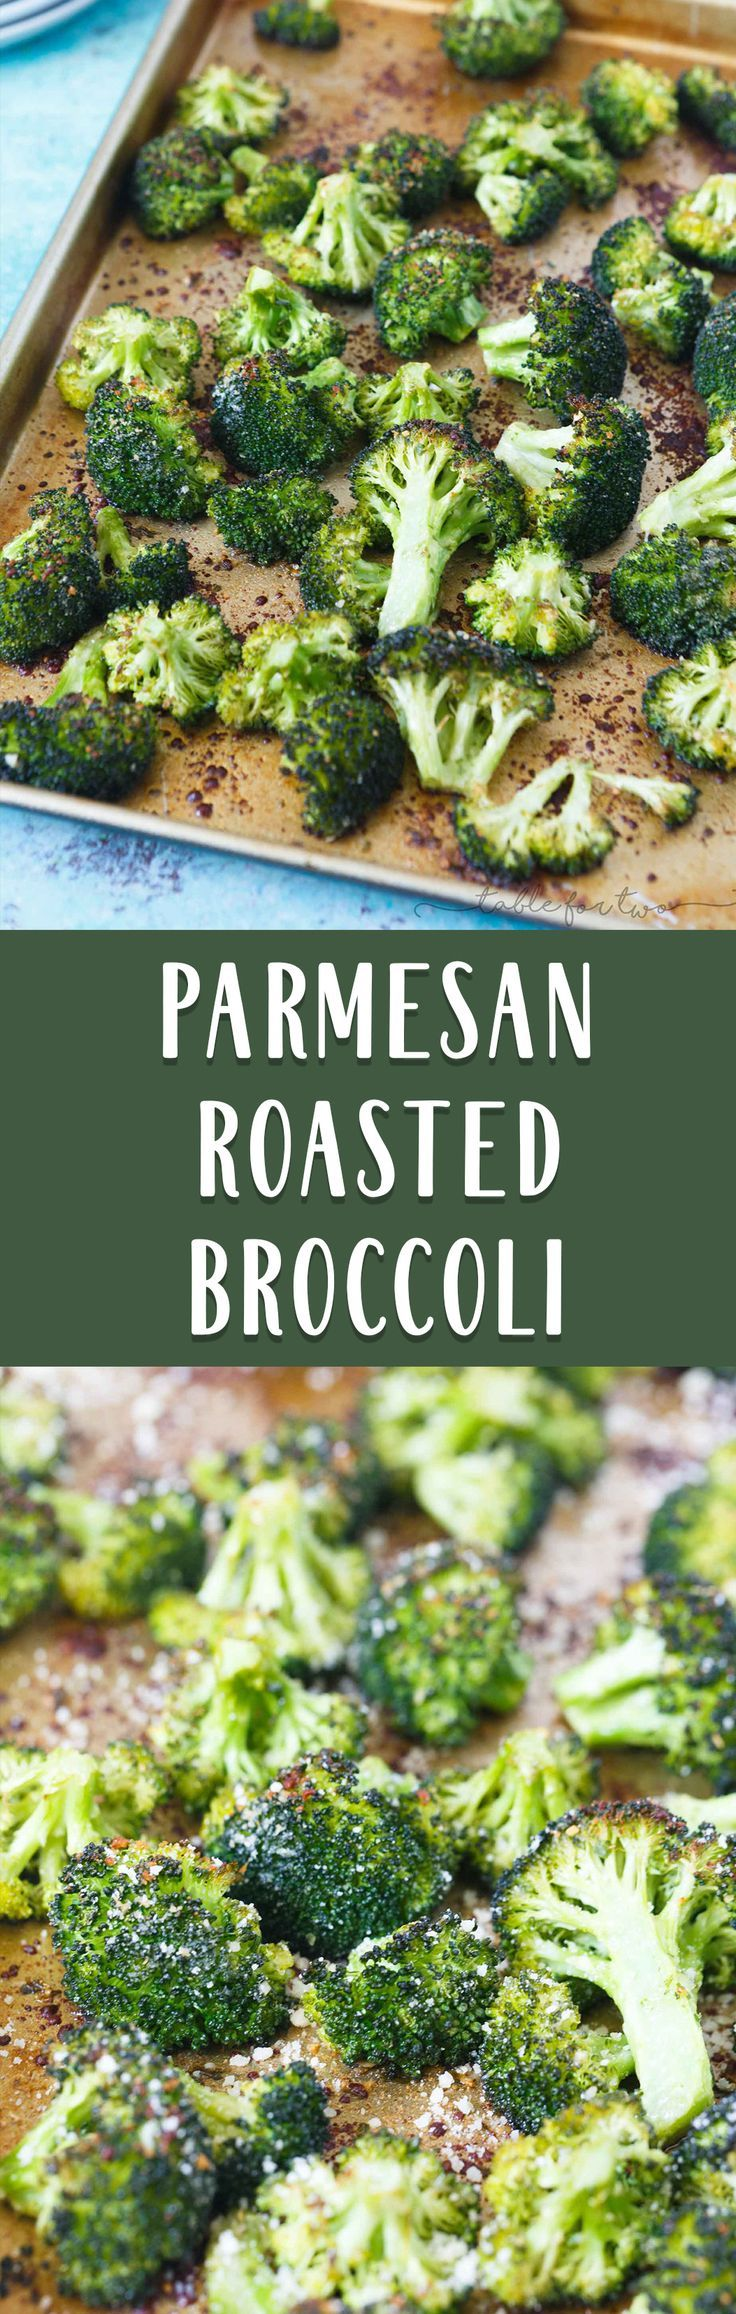 Roasted parmesan broccoli is an easy and delicious way to jazz up the classic roasted broccoli or roasted vegetables! Makes for a great side dish!